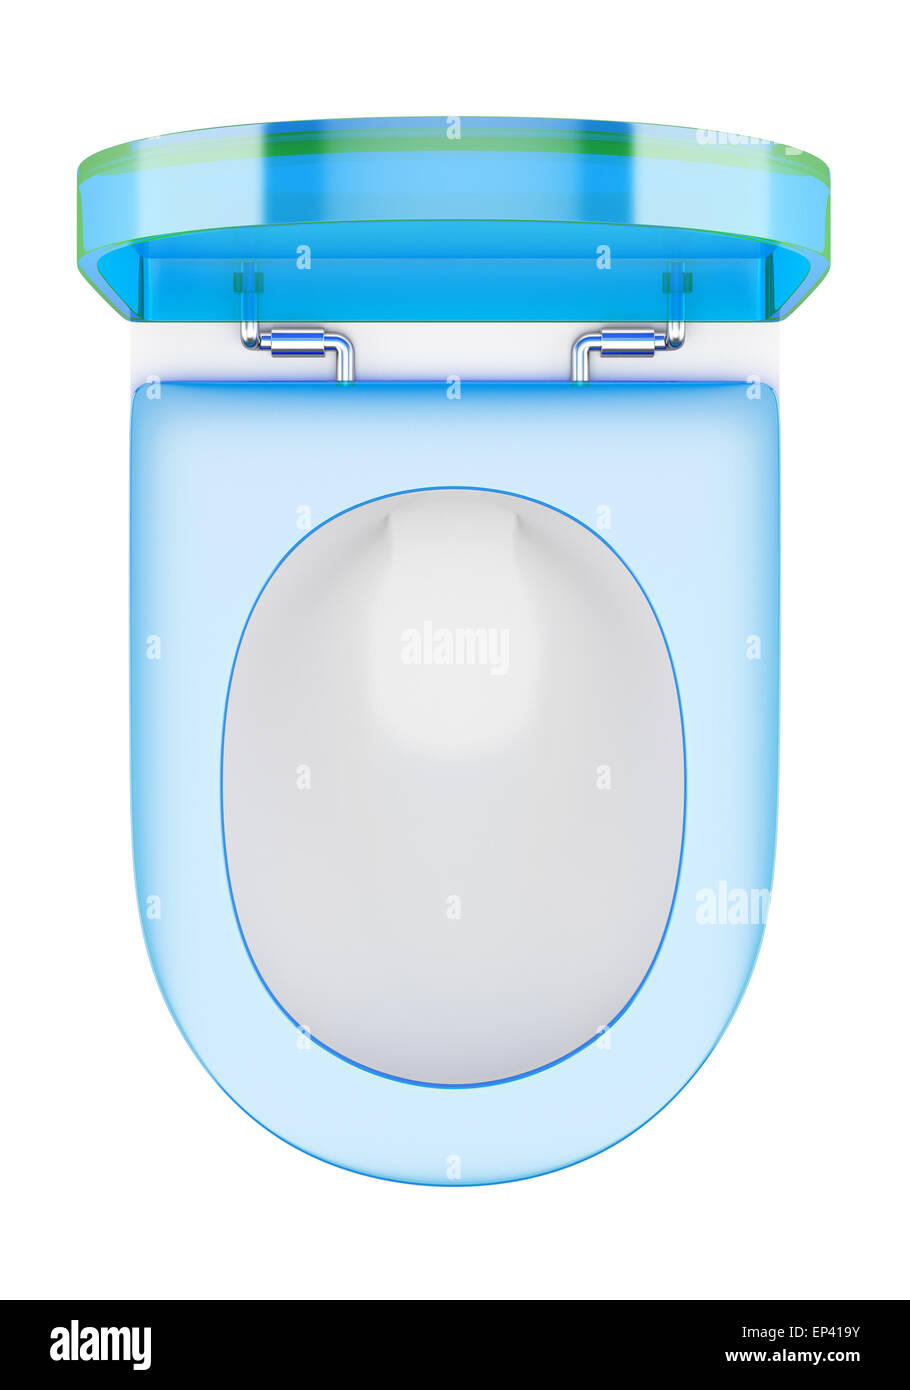 Stock Photo   top view of modern toilet bowl with blue cover. top view of modern toilet bowl with blue cover Stock Photo